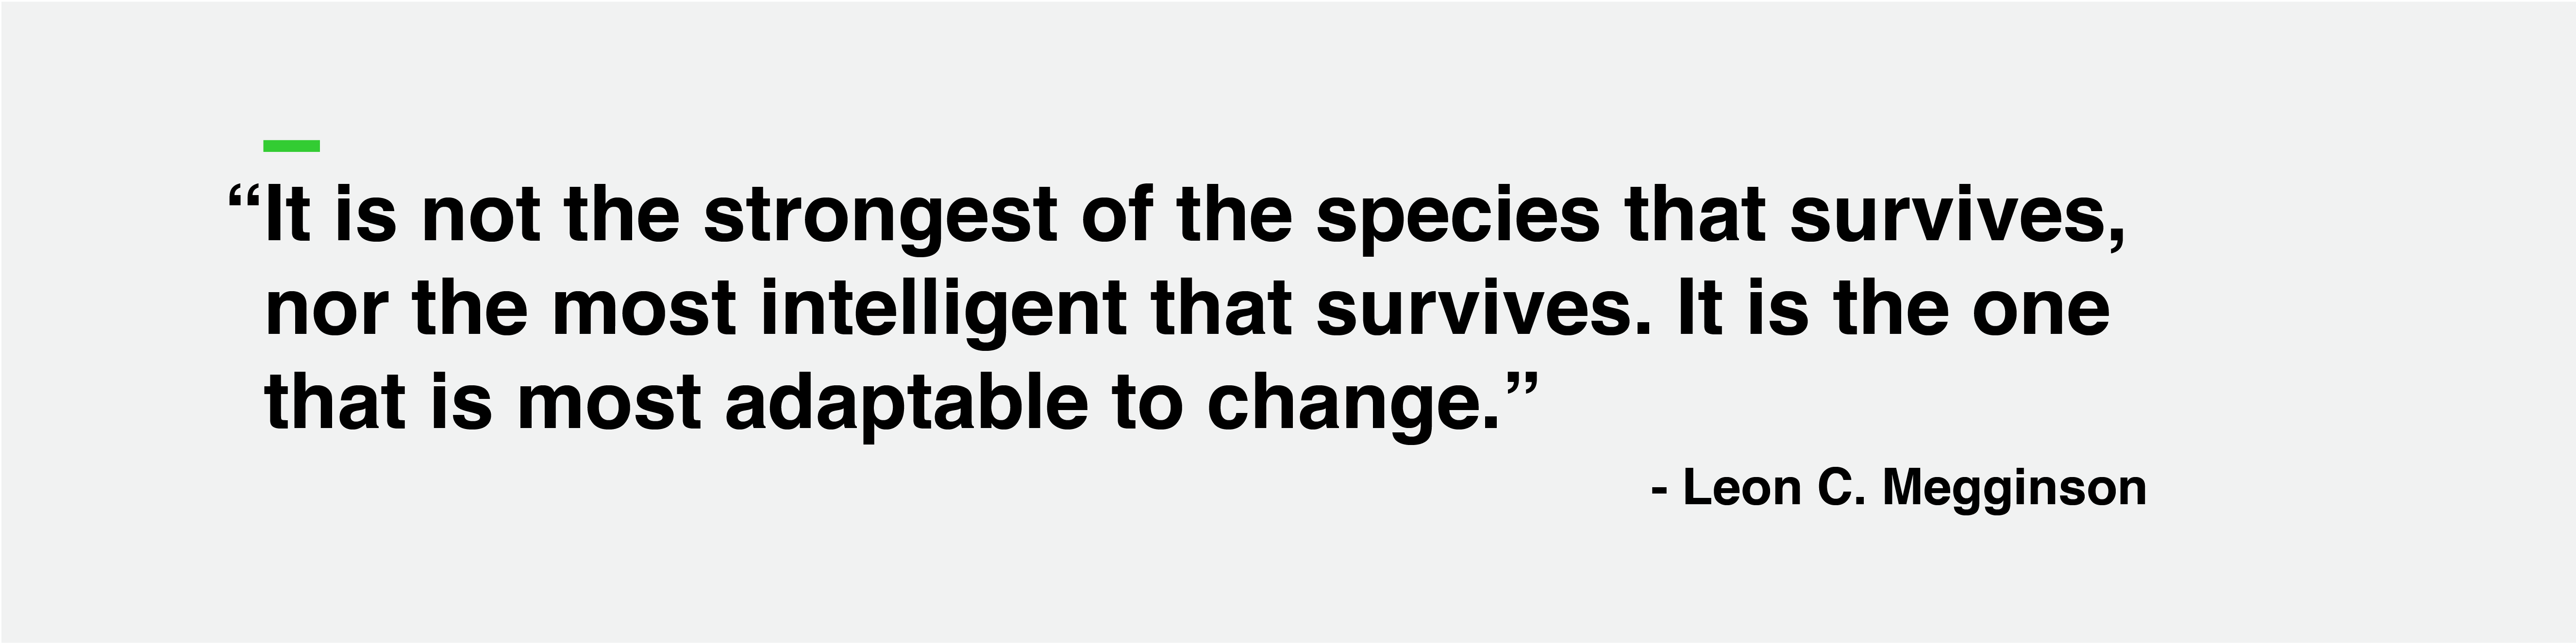 """""""It is not the strongest of the species that survives, nor the most intelligent that survives. It is the one that is most adaptable to change."""" -Leon Megginson"""